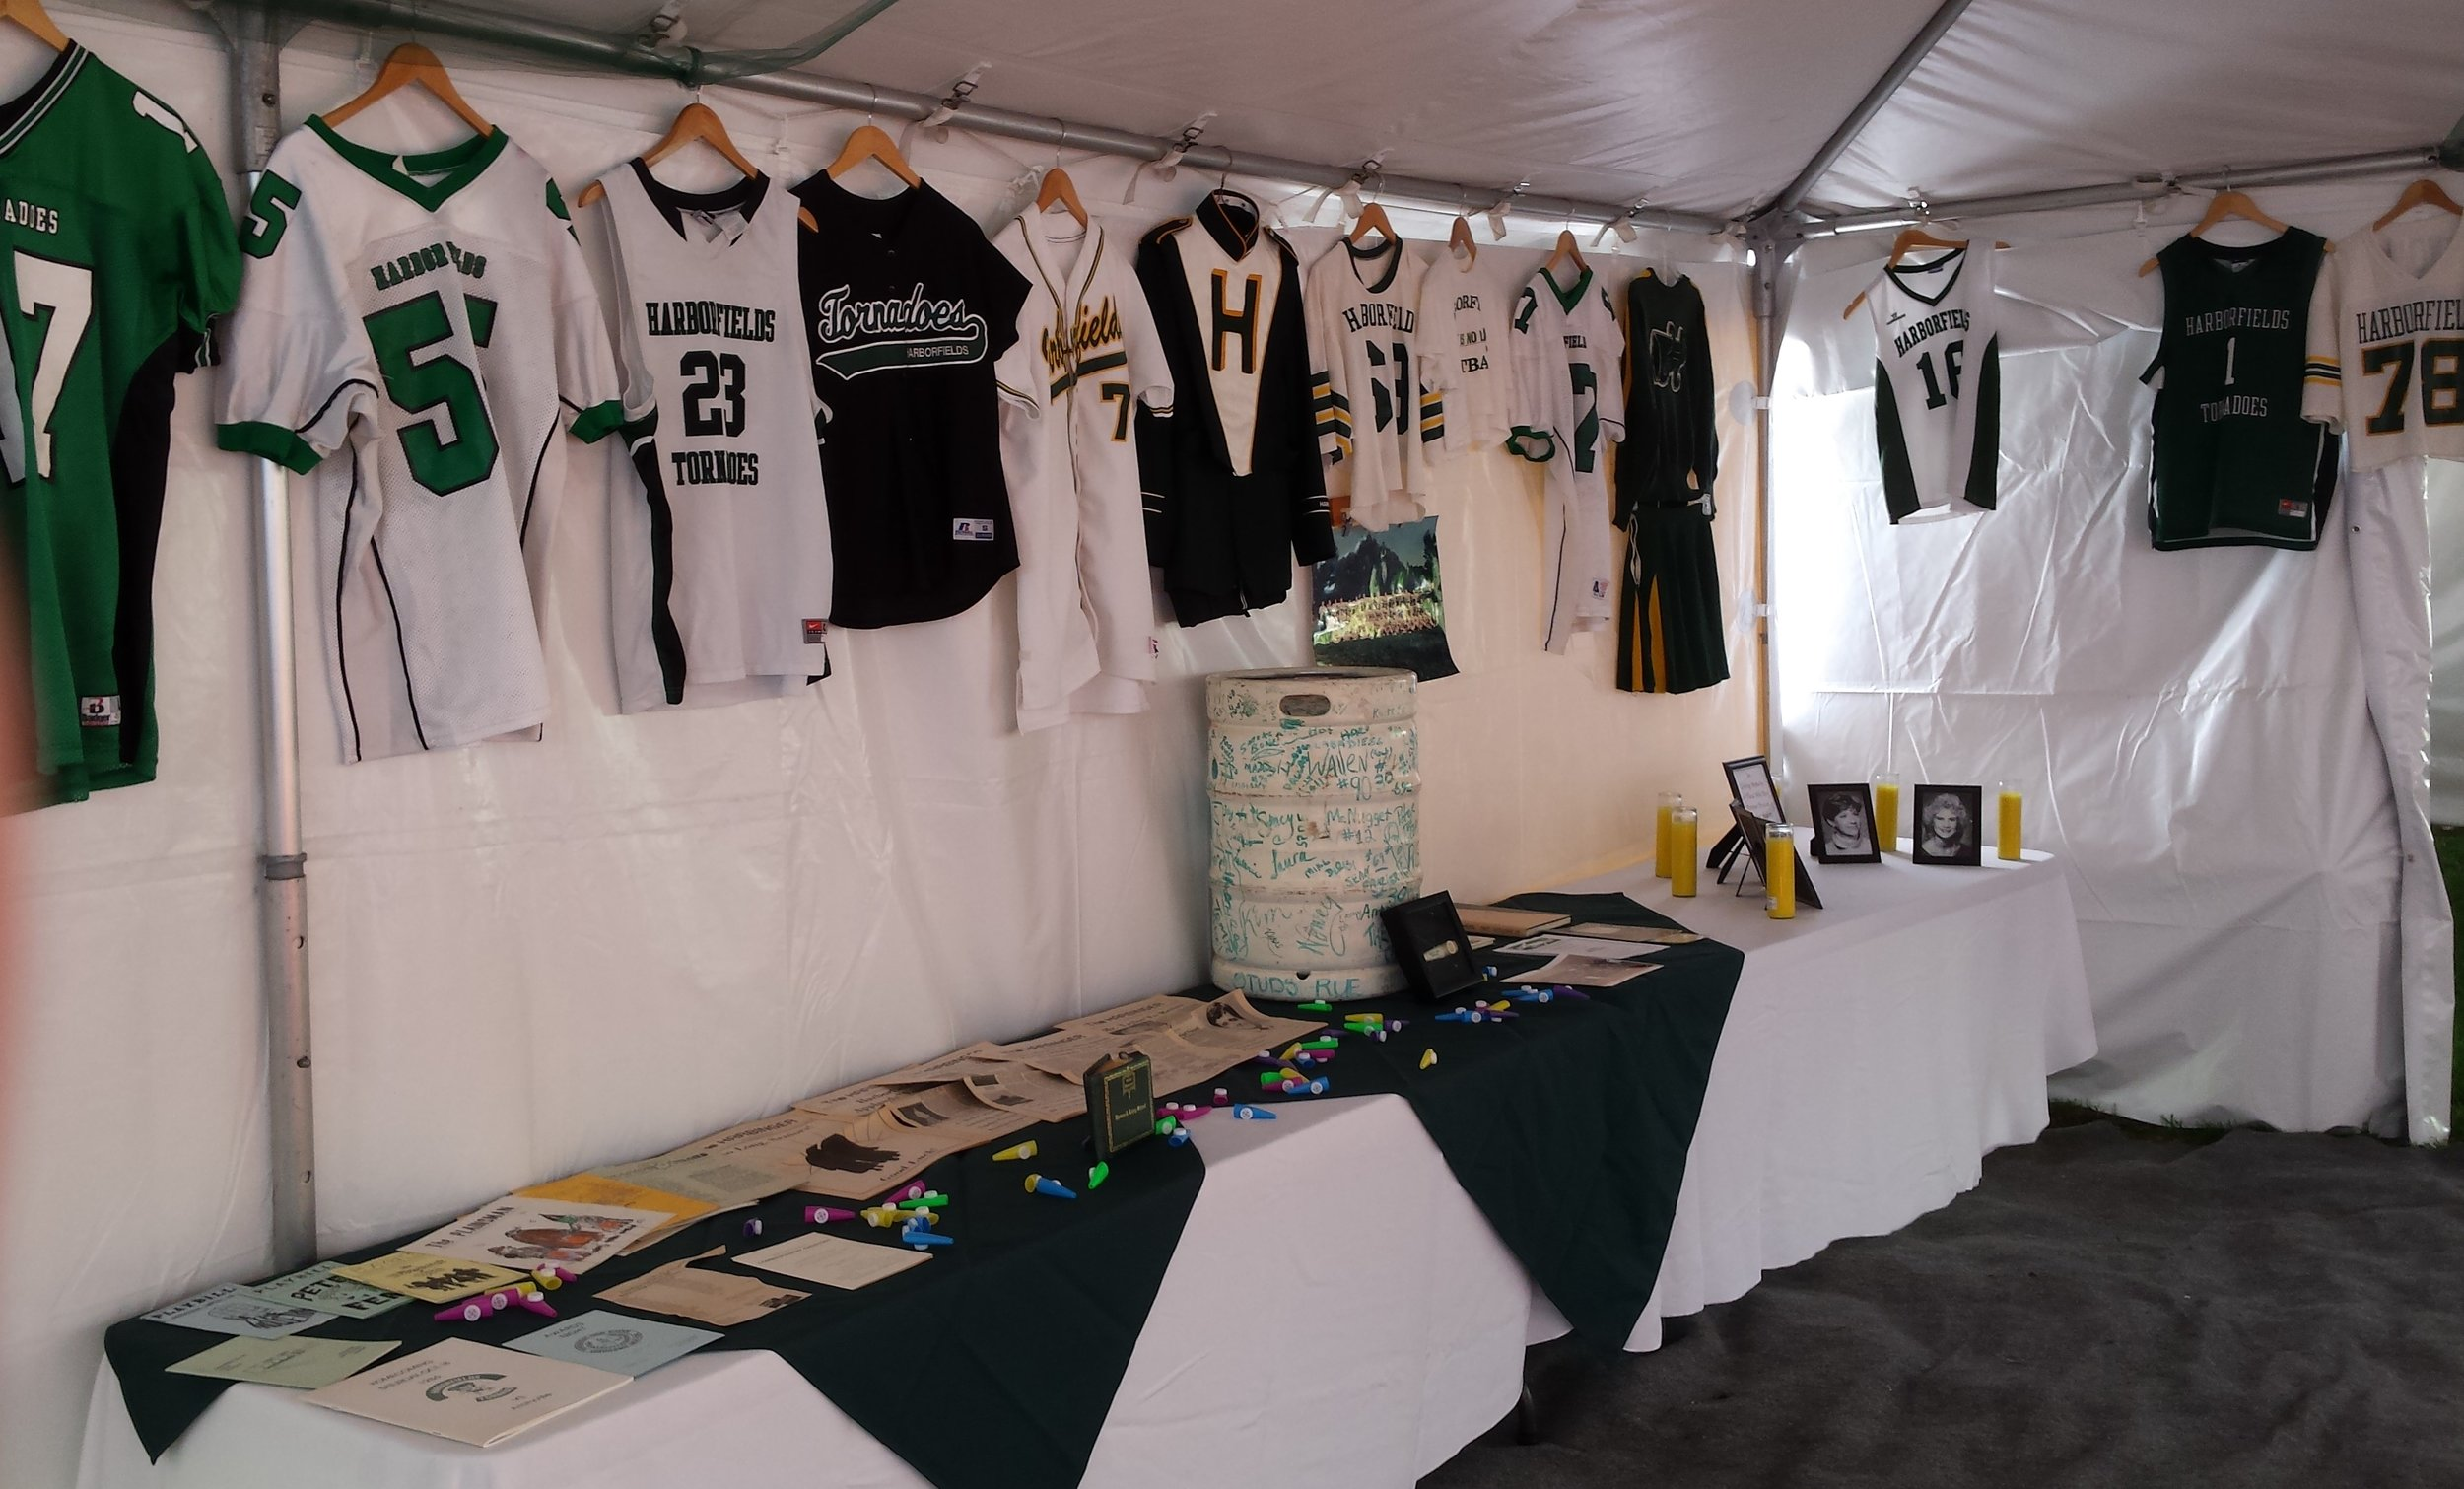 The Harborfields High School Class of 1987 hung several mementos during its 30th reunion.   Photo Courtesy of John Tilden